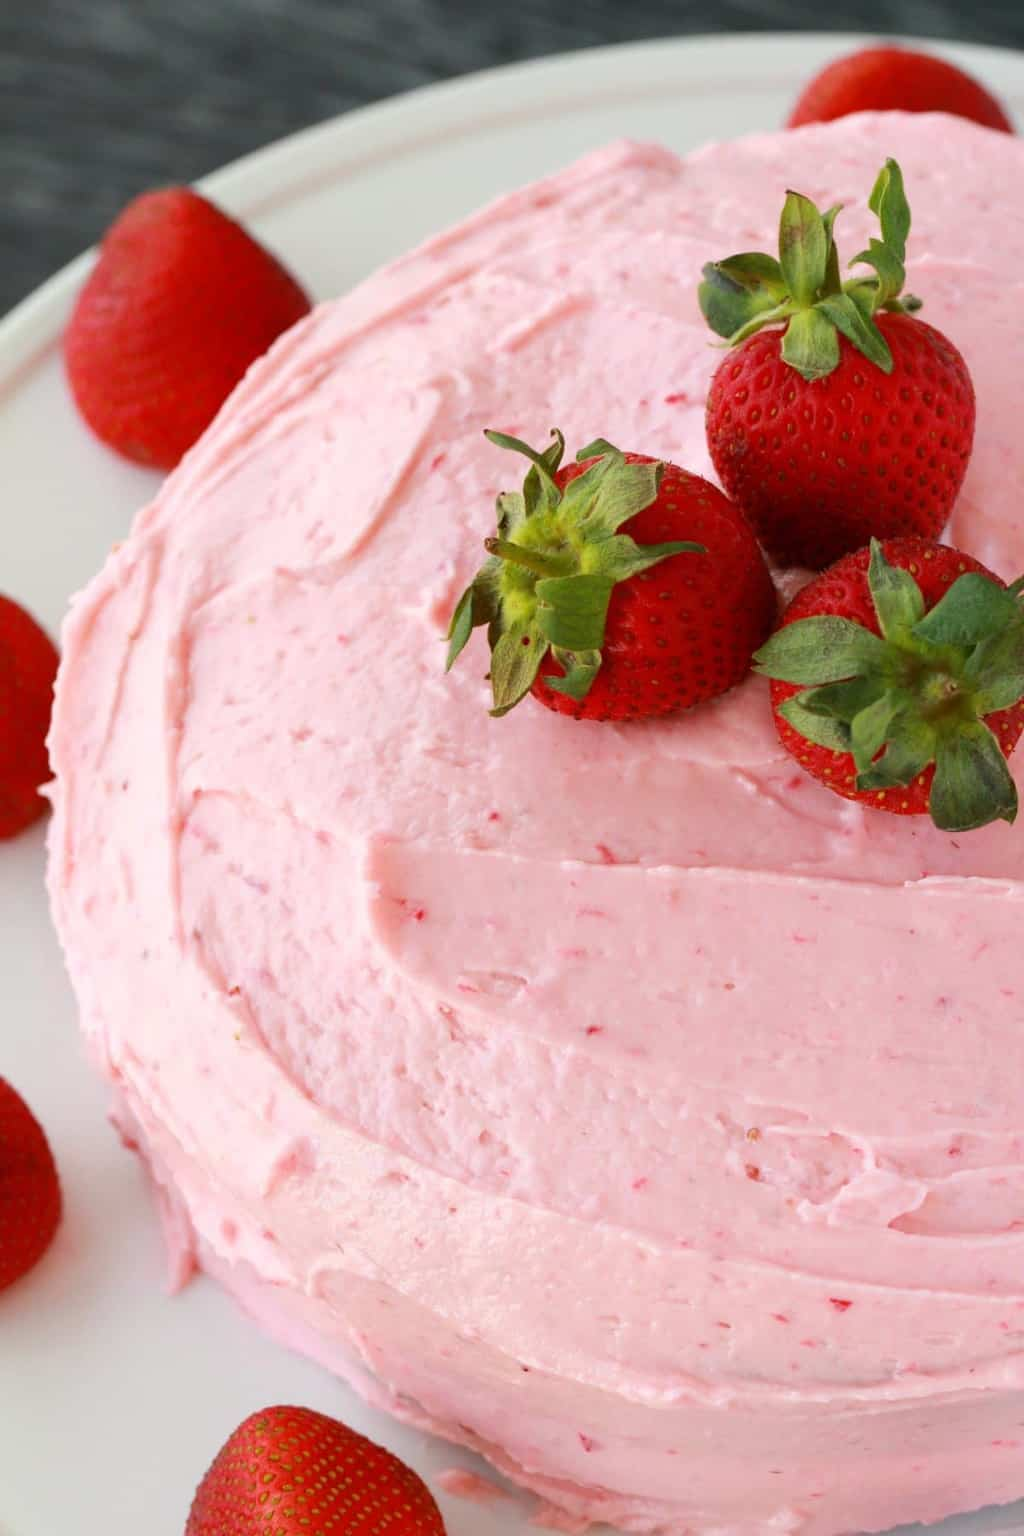 Light, fluffy and deliciously moist vegan strawberry cake with strawberry frosting. This pretty pink cake is packed with strawberry flavor and goodness. #vegan #lovingitvegan #strawberrycake #vegancake #dessert #dairyfree